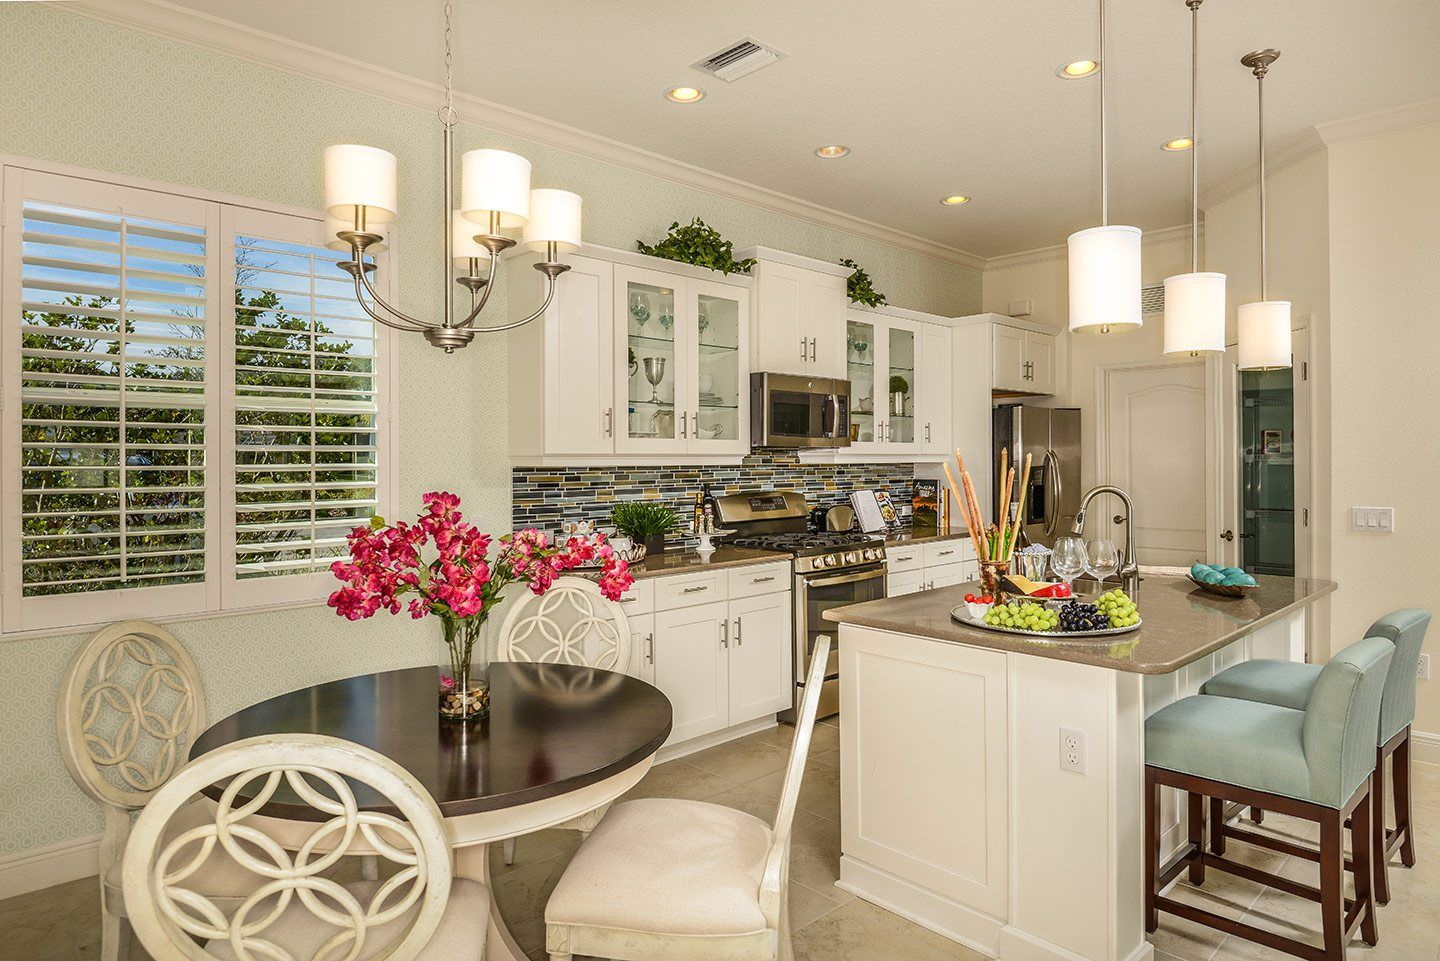 Kitchen featured in the Endless Summer 3 By Neal Communities in Sarasota-Bradenton, FL